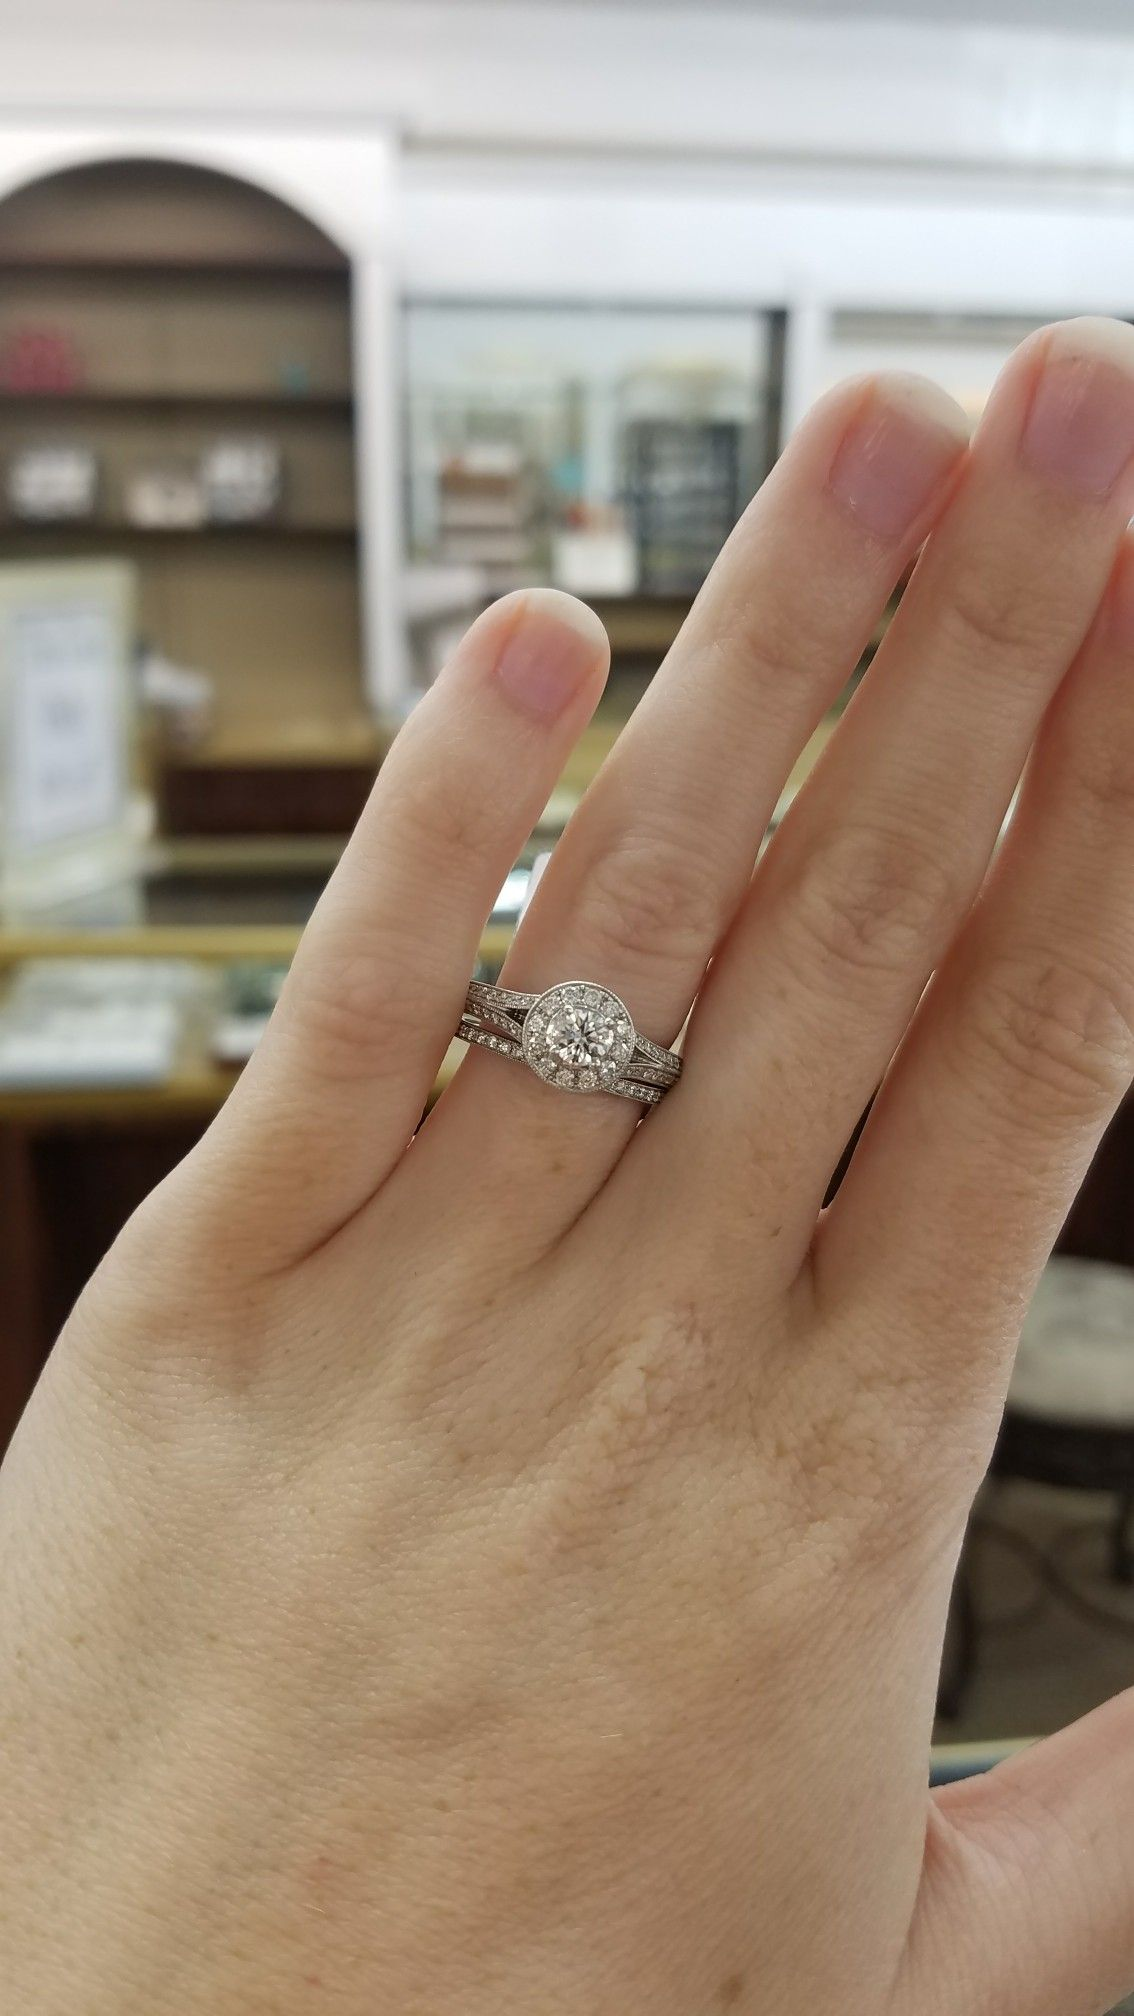 100 00687 Ladies 1 Carat Diamond Total Weight Wedding Set Round With Halo And Fancy Setting Engagement Rings Wedding Sets 1 Carat